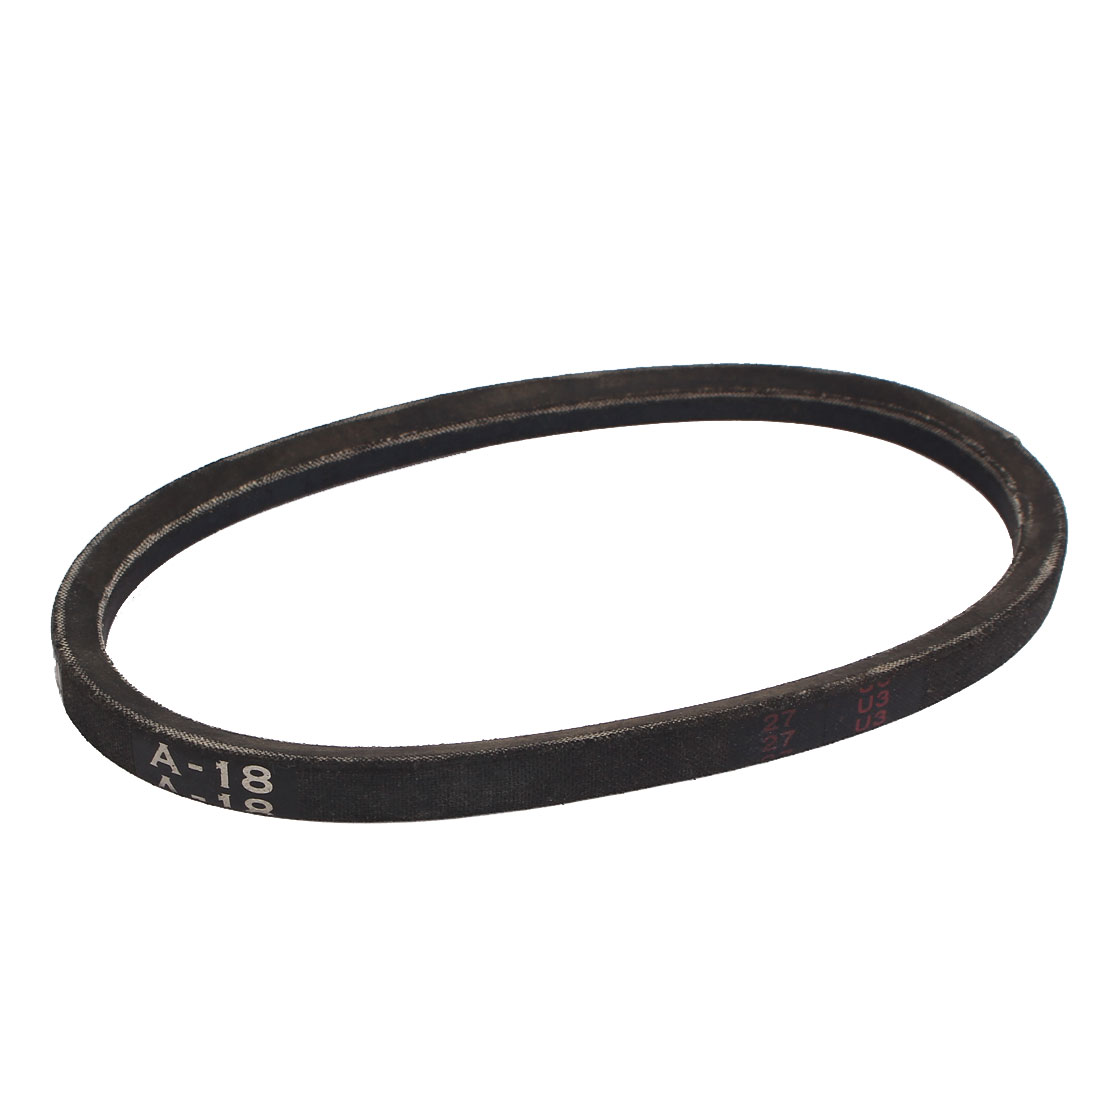 "A18 Yard Machine Lawn Mower Tractor Drive Belt V-Belt 18"" x 1/2"" Black"